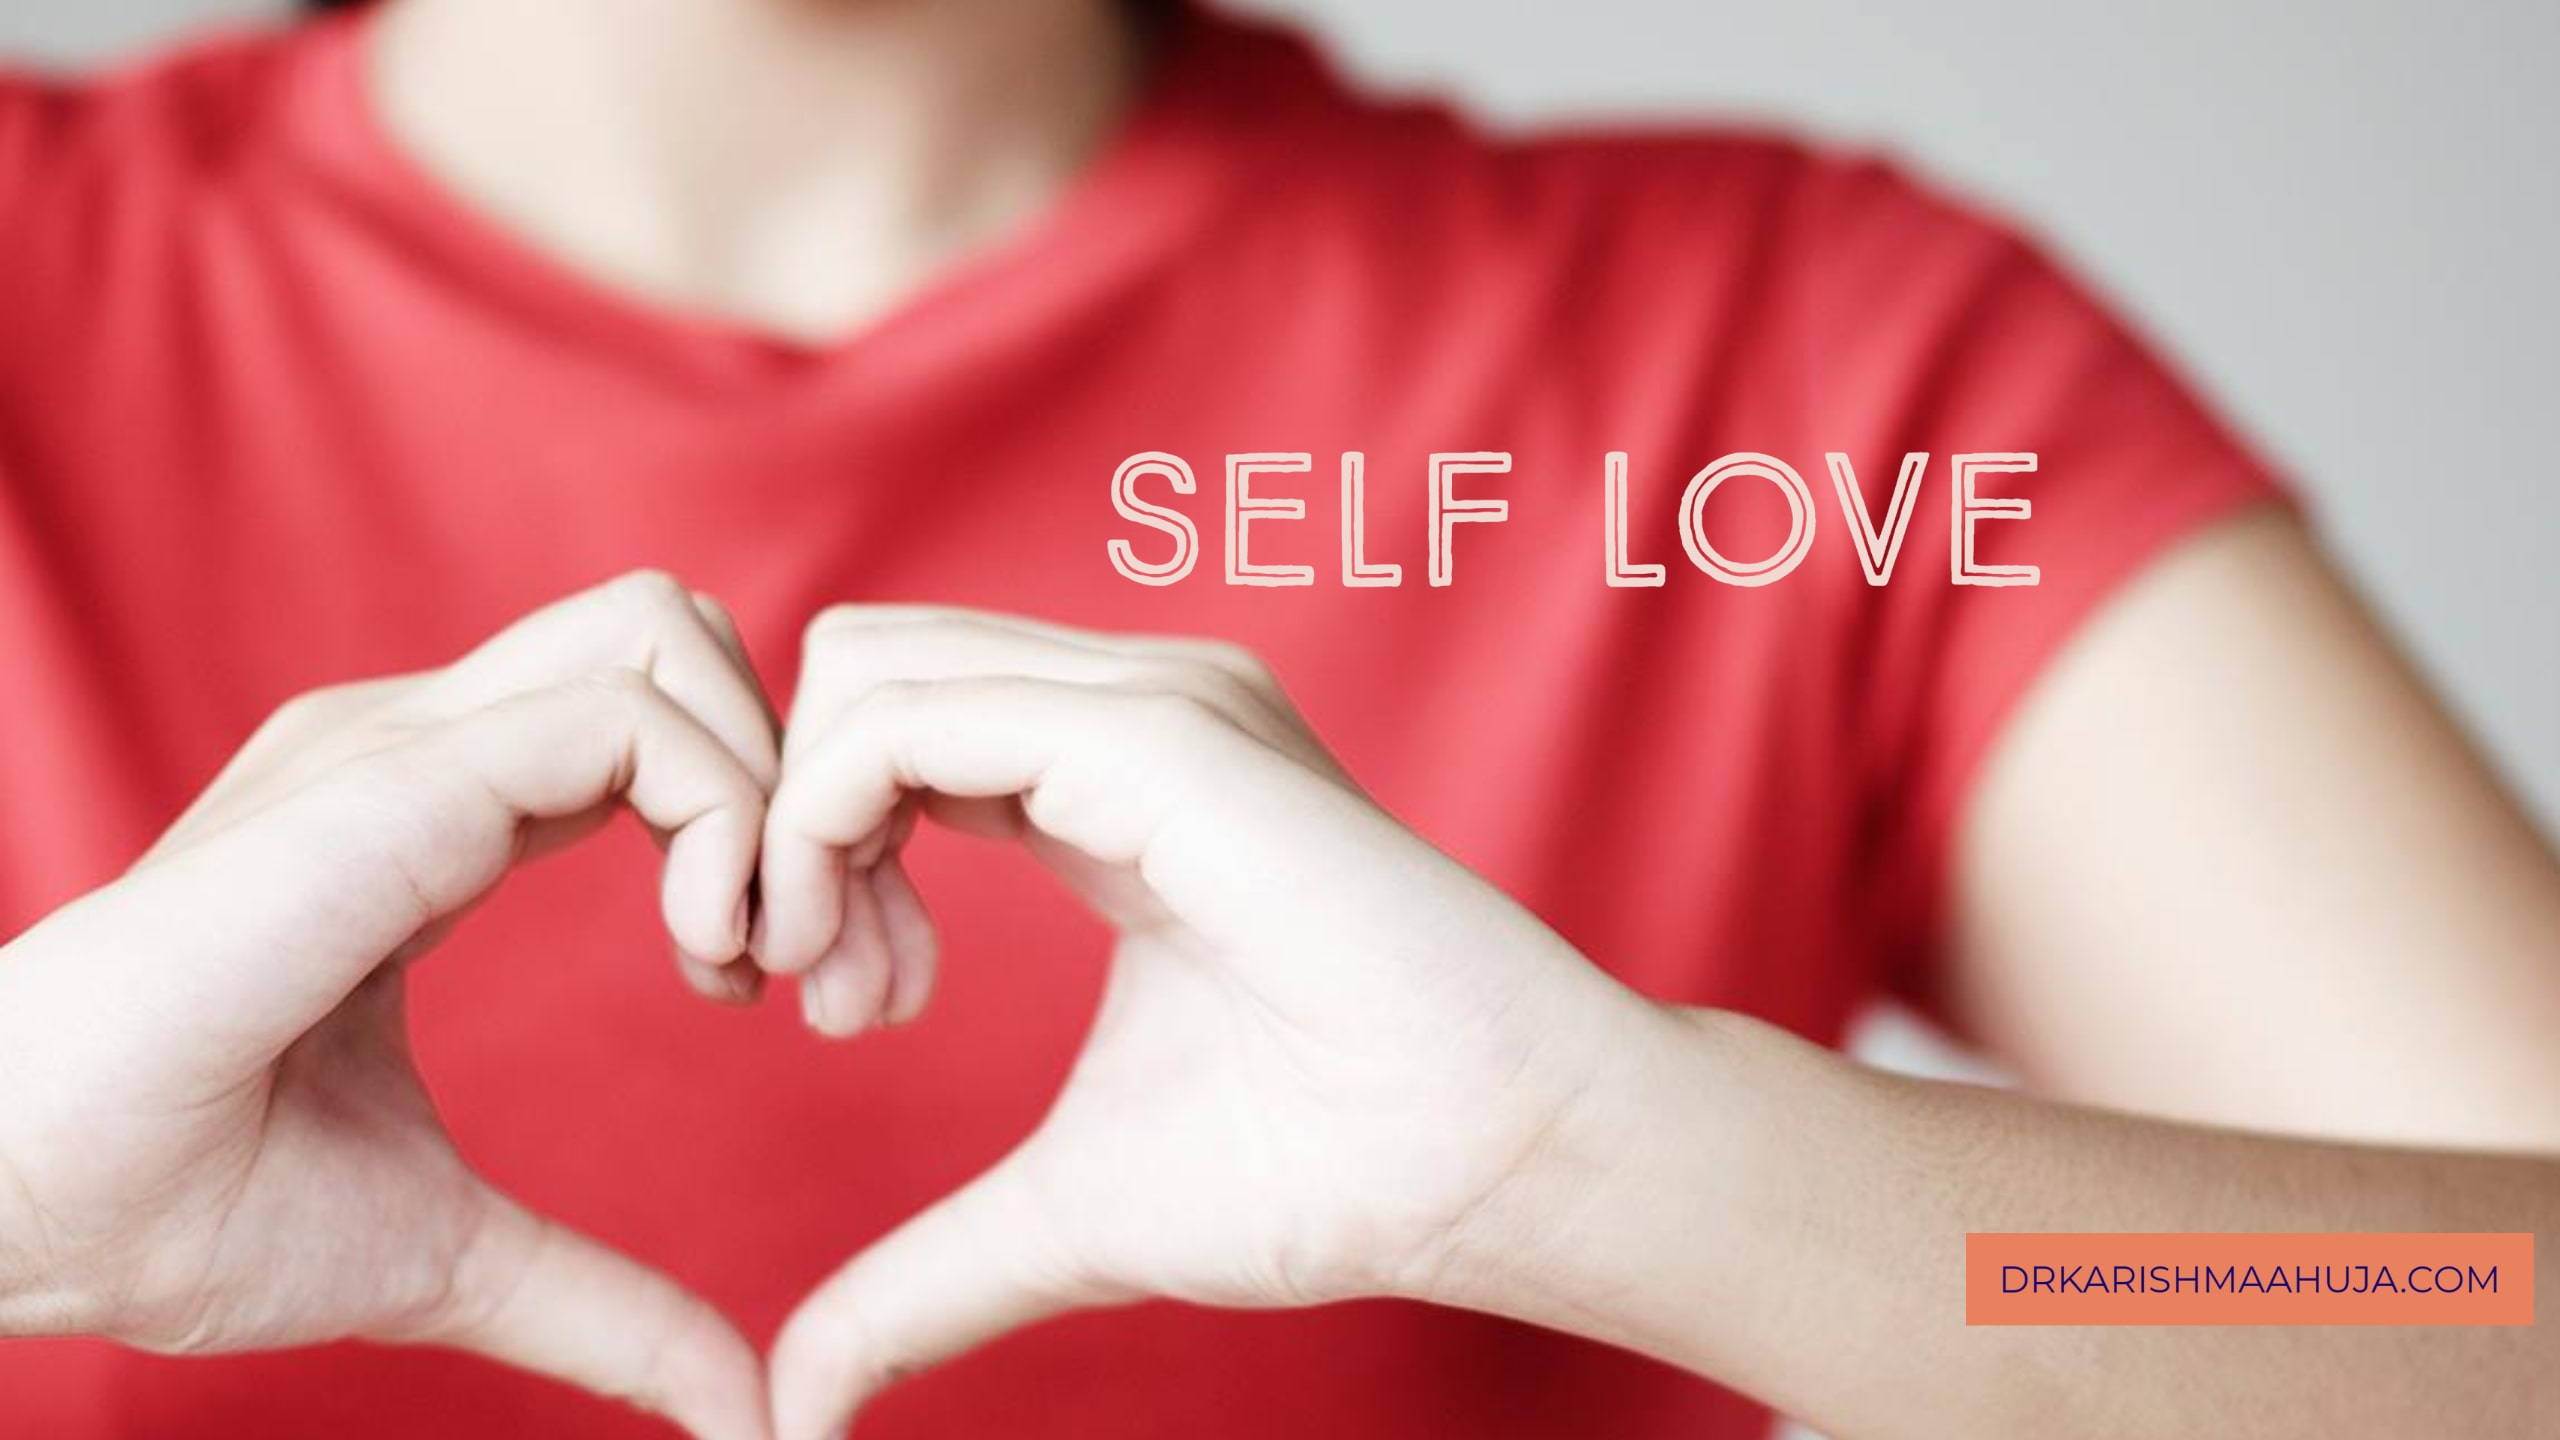 How to Practice Self Love by Dr Karishma Ahuja